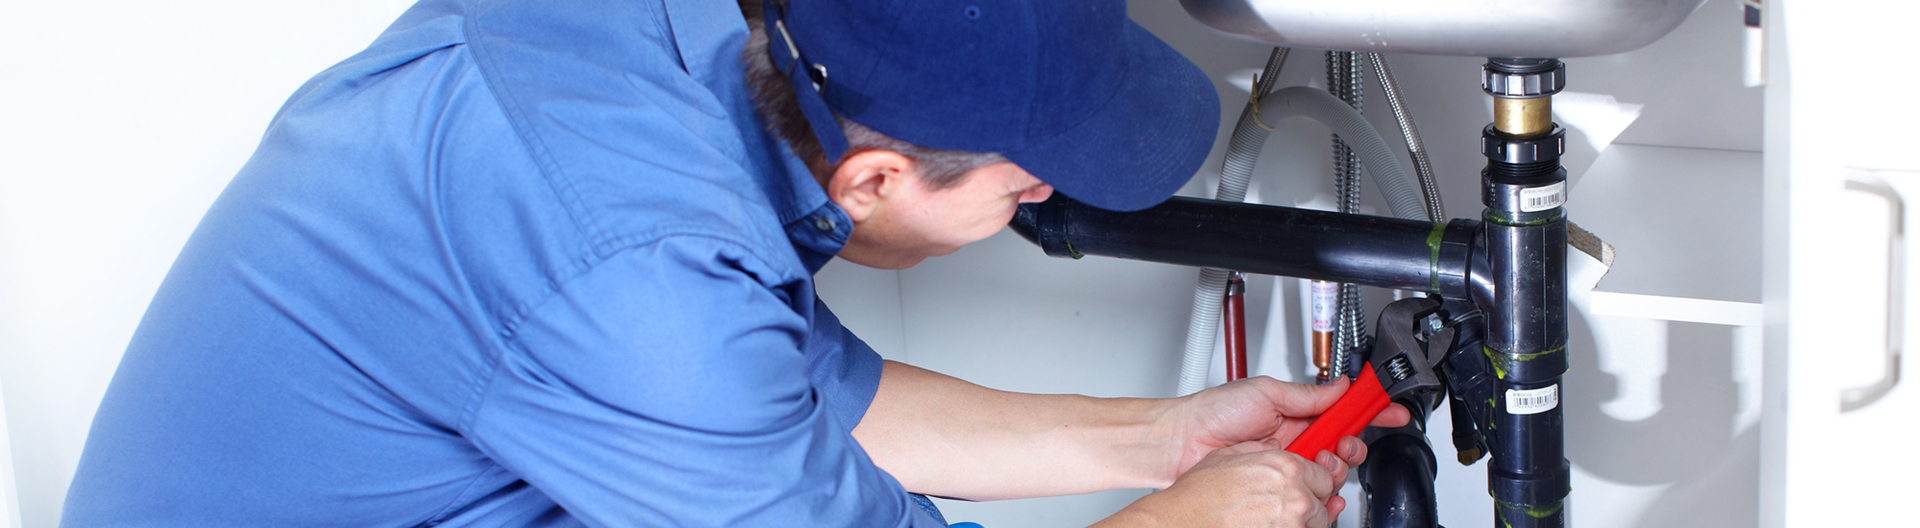 Expert plumber doping the repair